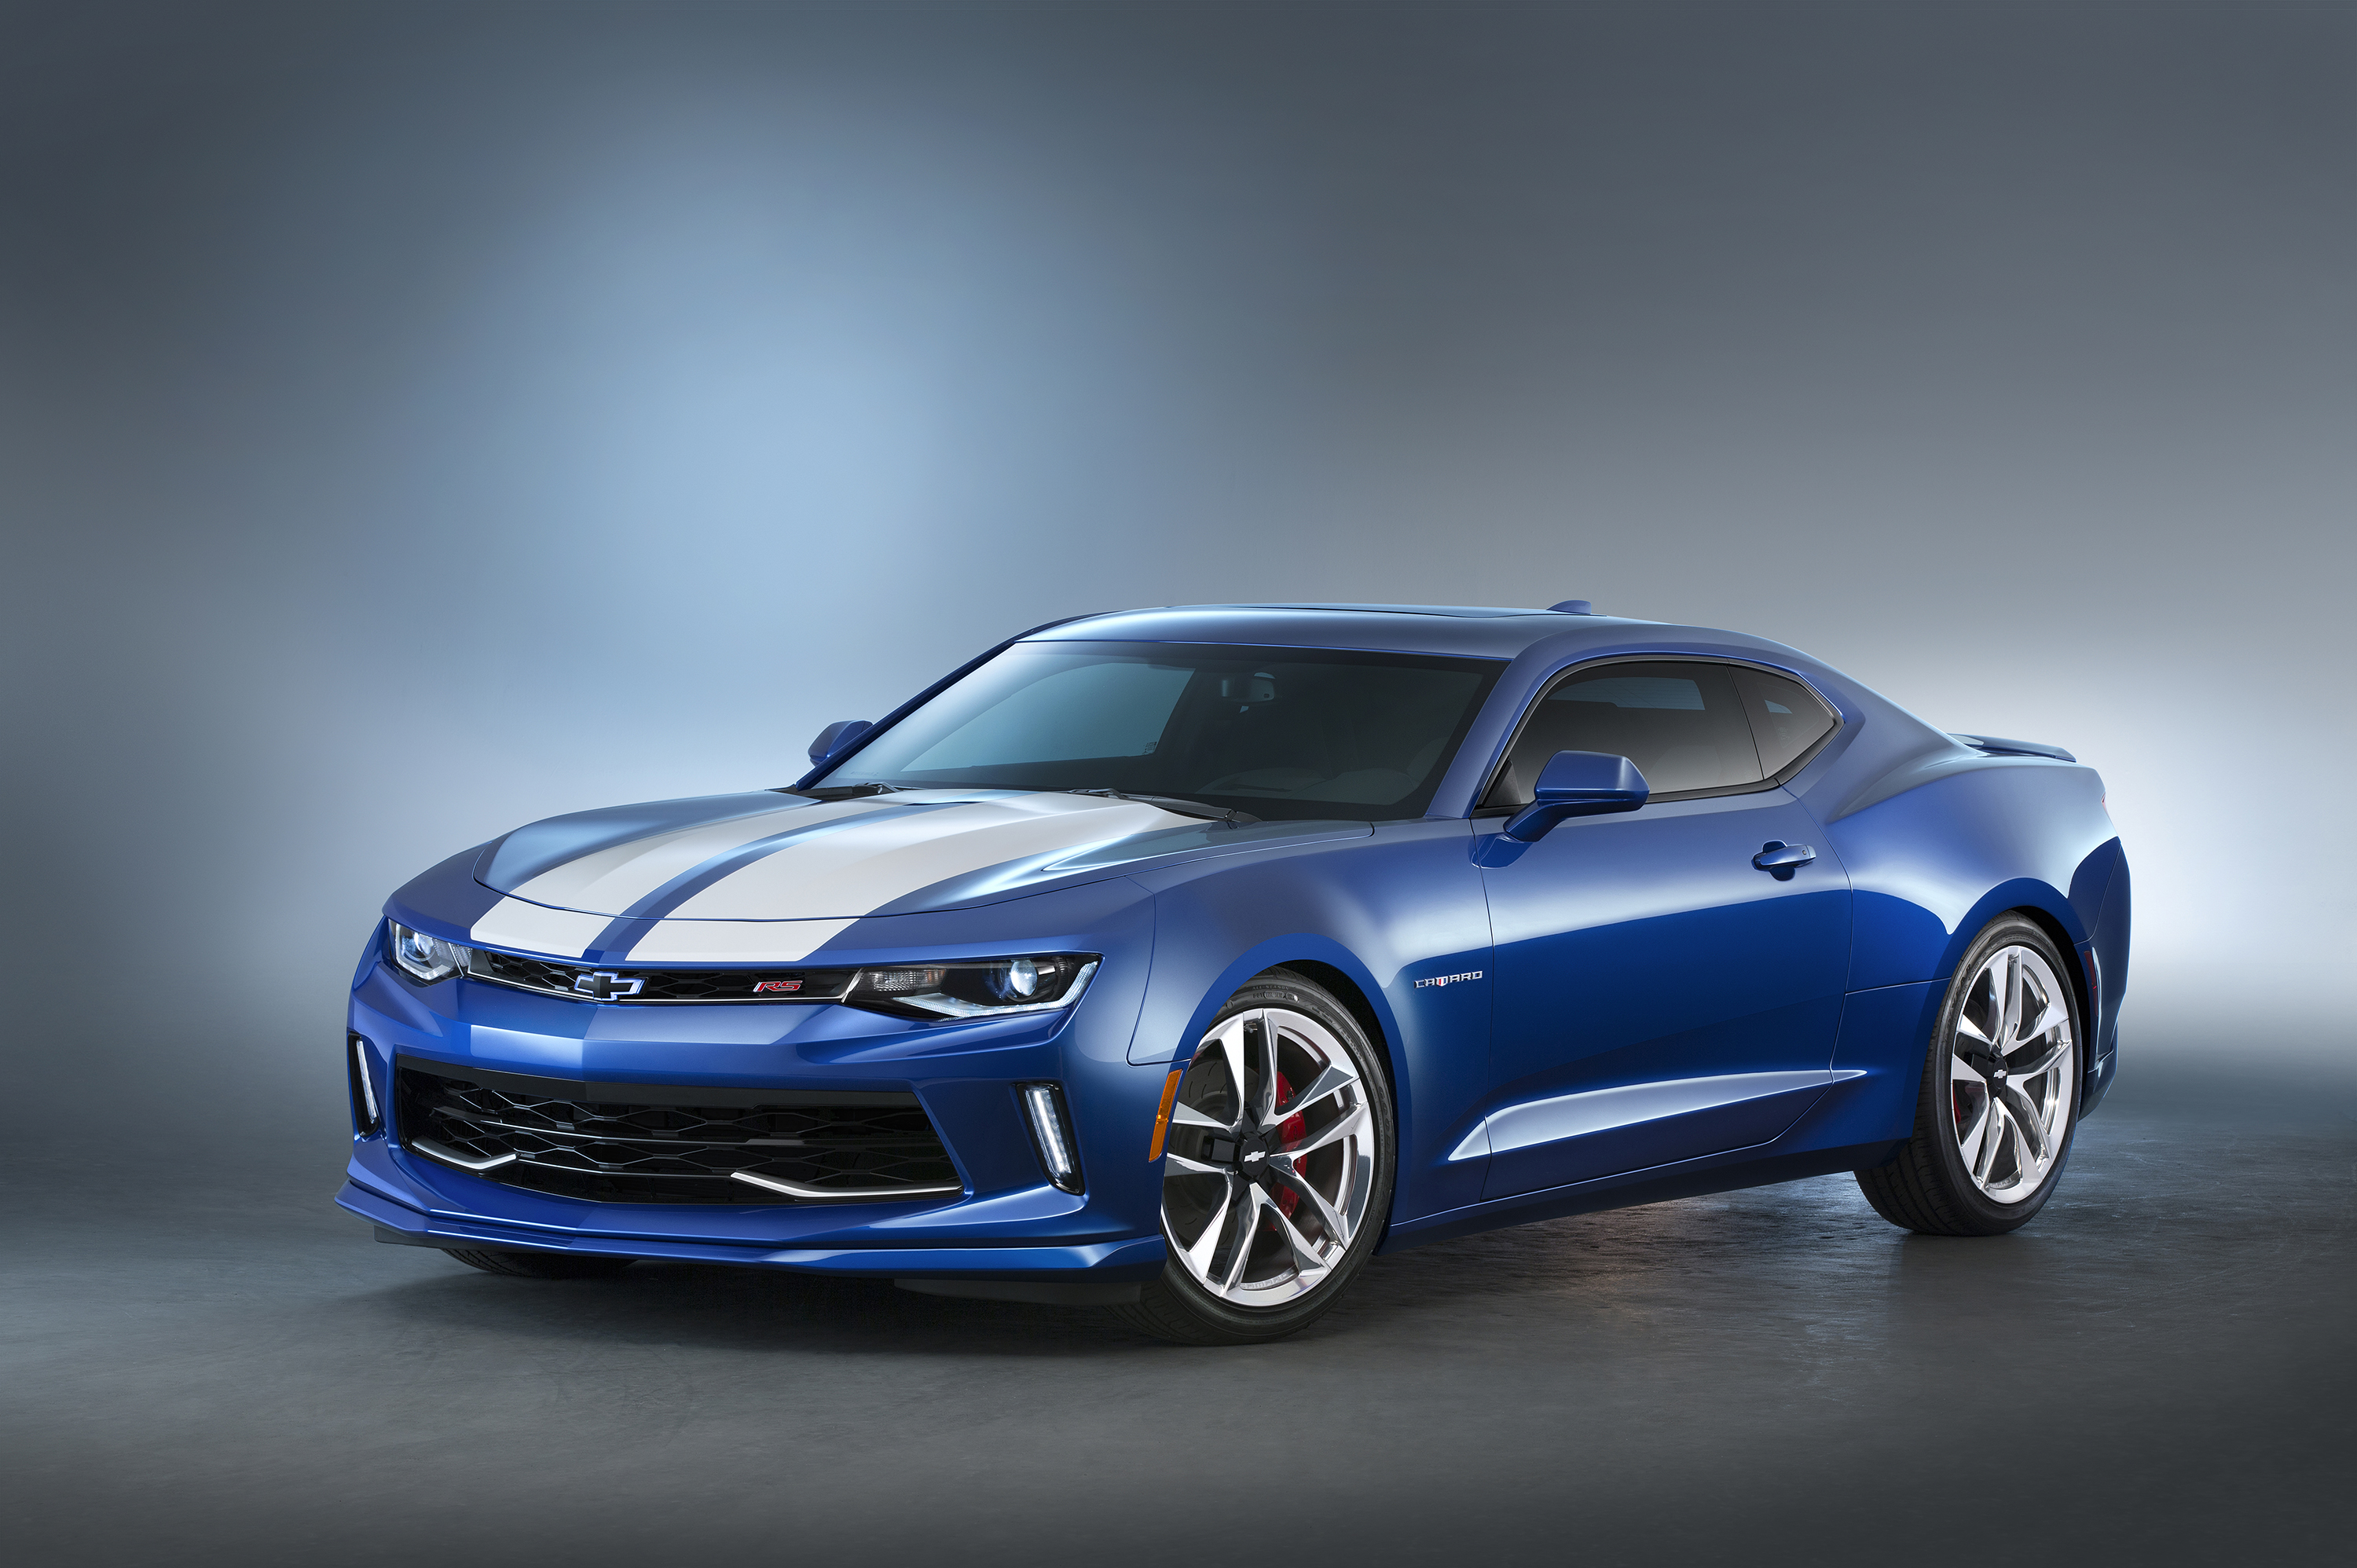 Camaro Hyper concept – Inspired by Camaro's heritage, this Hyper Blue Camaro LT coupe with the available 3.6L V-6 engine features white rally stripes, heritage-style fender badges and polished 20-inch forged aluminum wheels.